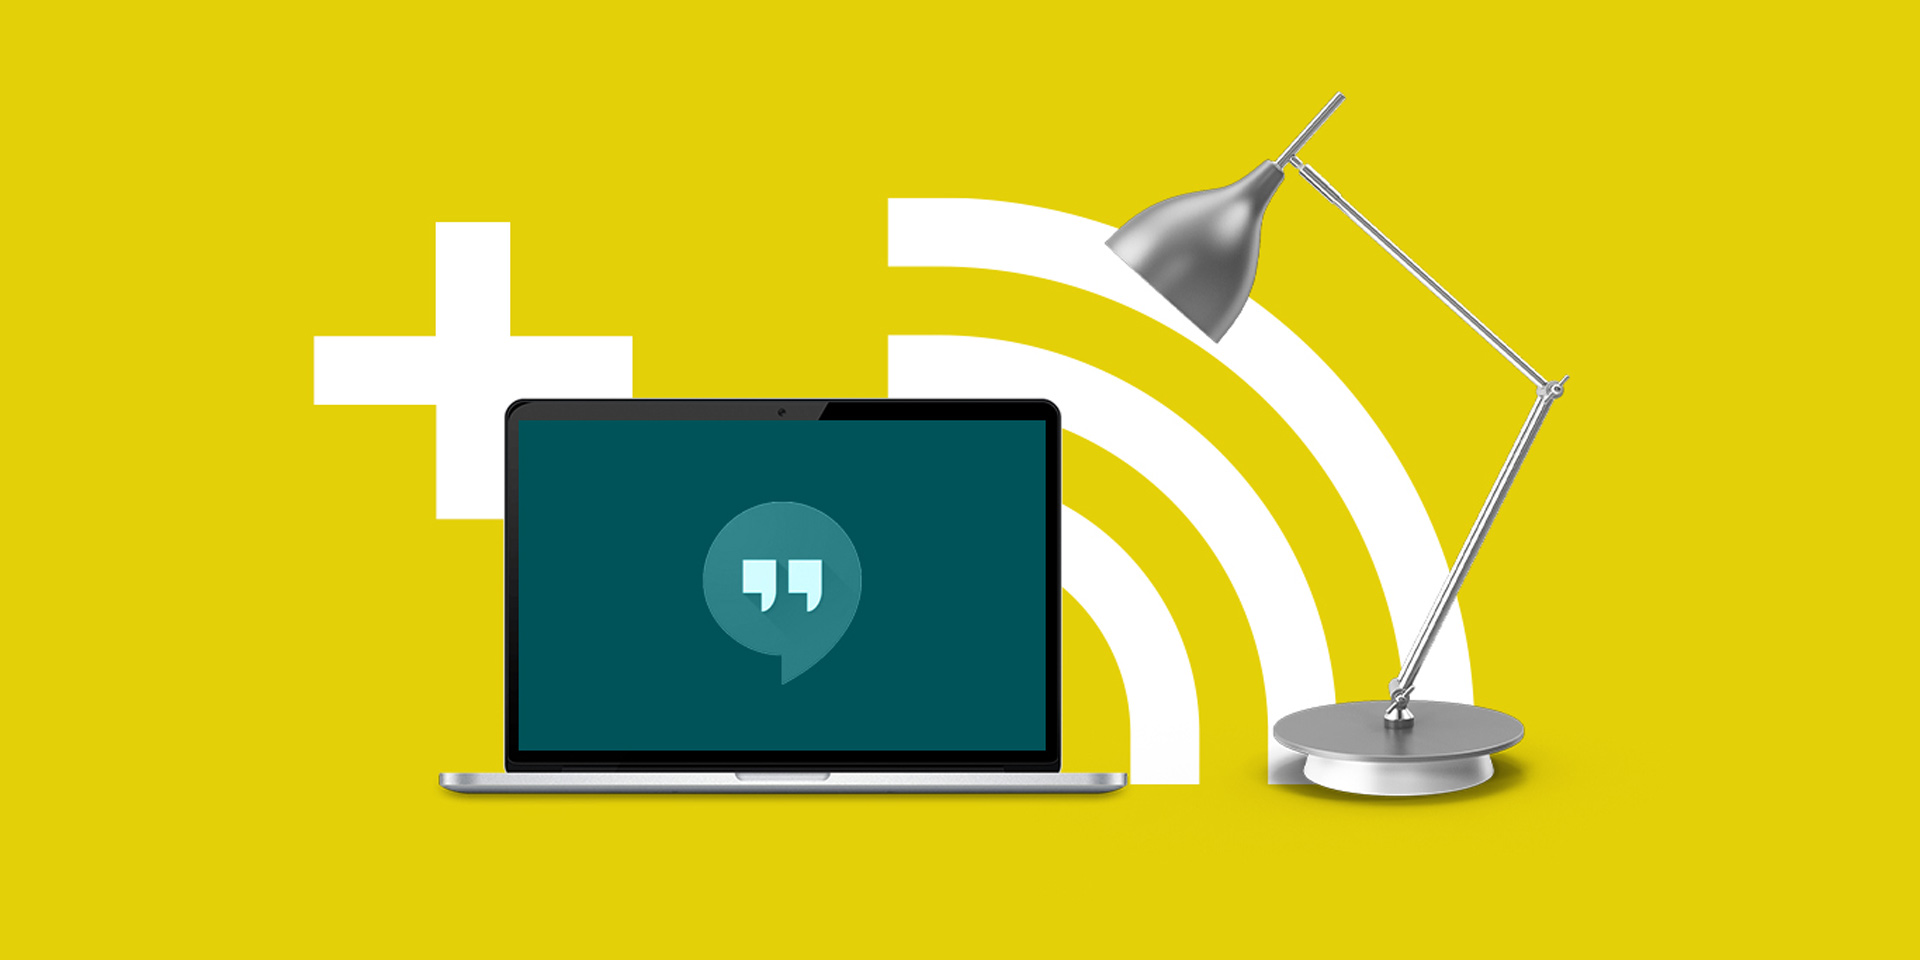 Best practices to follow if you are interviewing for a remote team